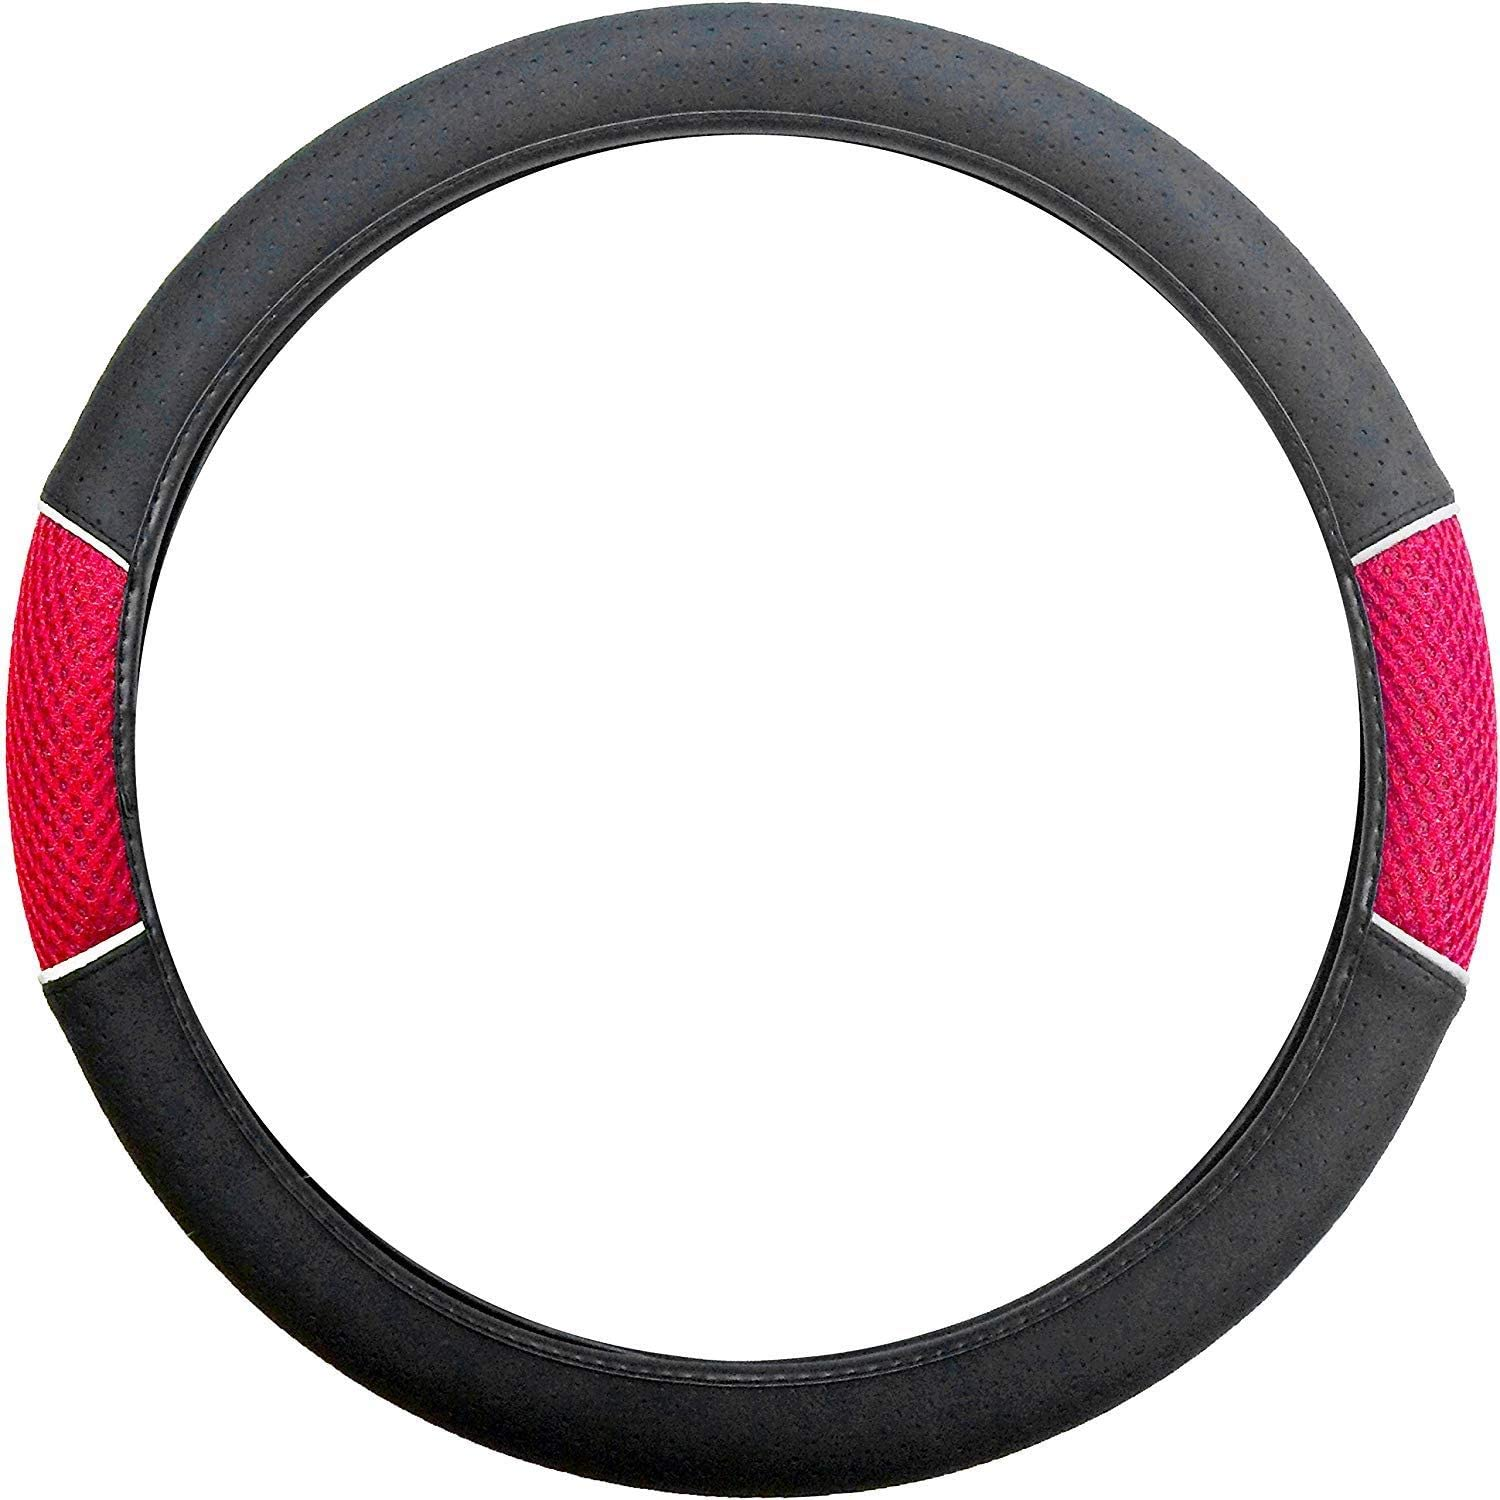 UKB4C Red /& Black Steering Wheel /& Front Seat Cover set for Vauxhall Tigra All Models